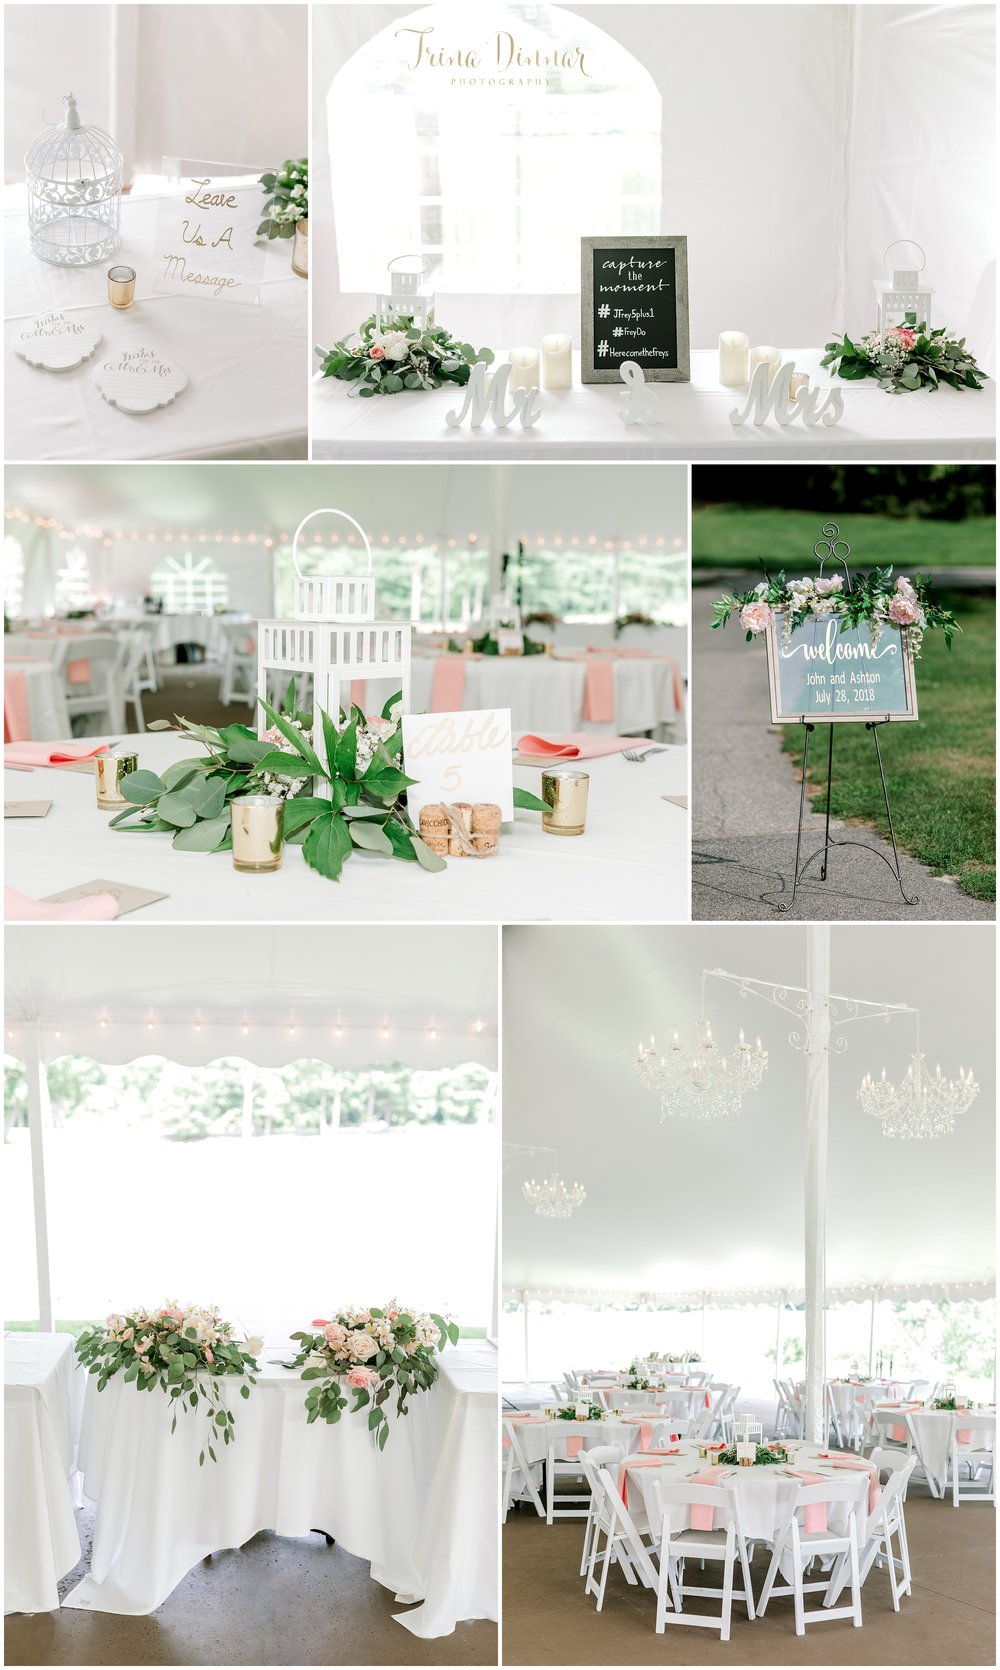 Falmouth Country Club Wedding Reception Tent Decor